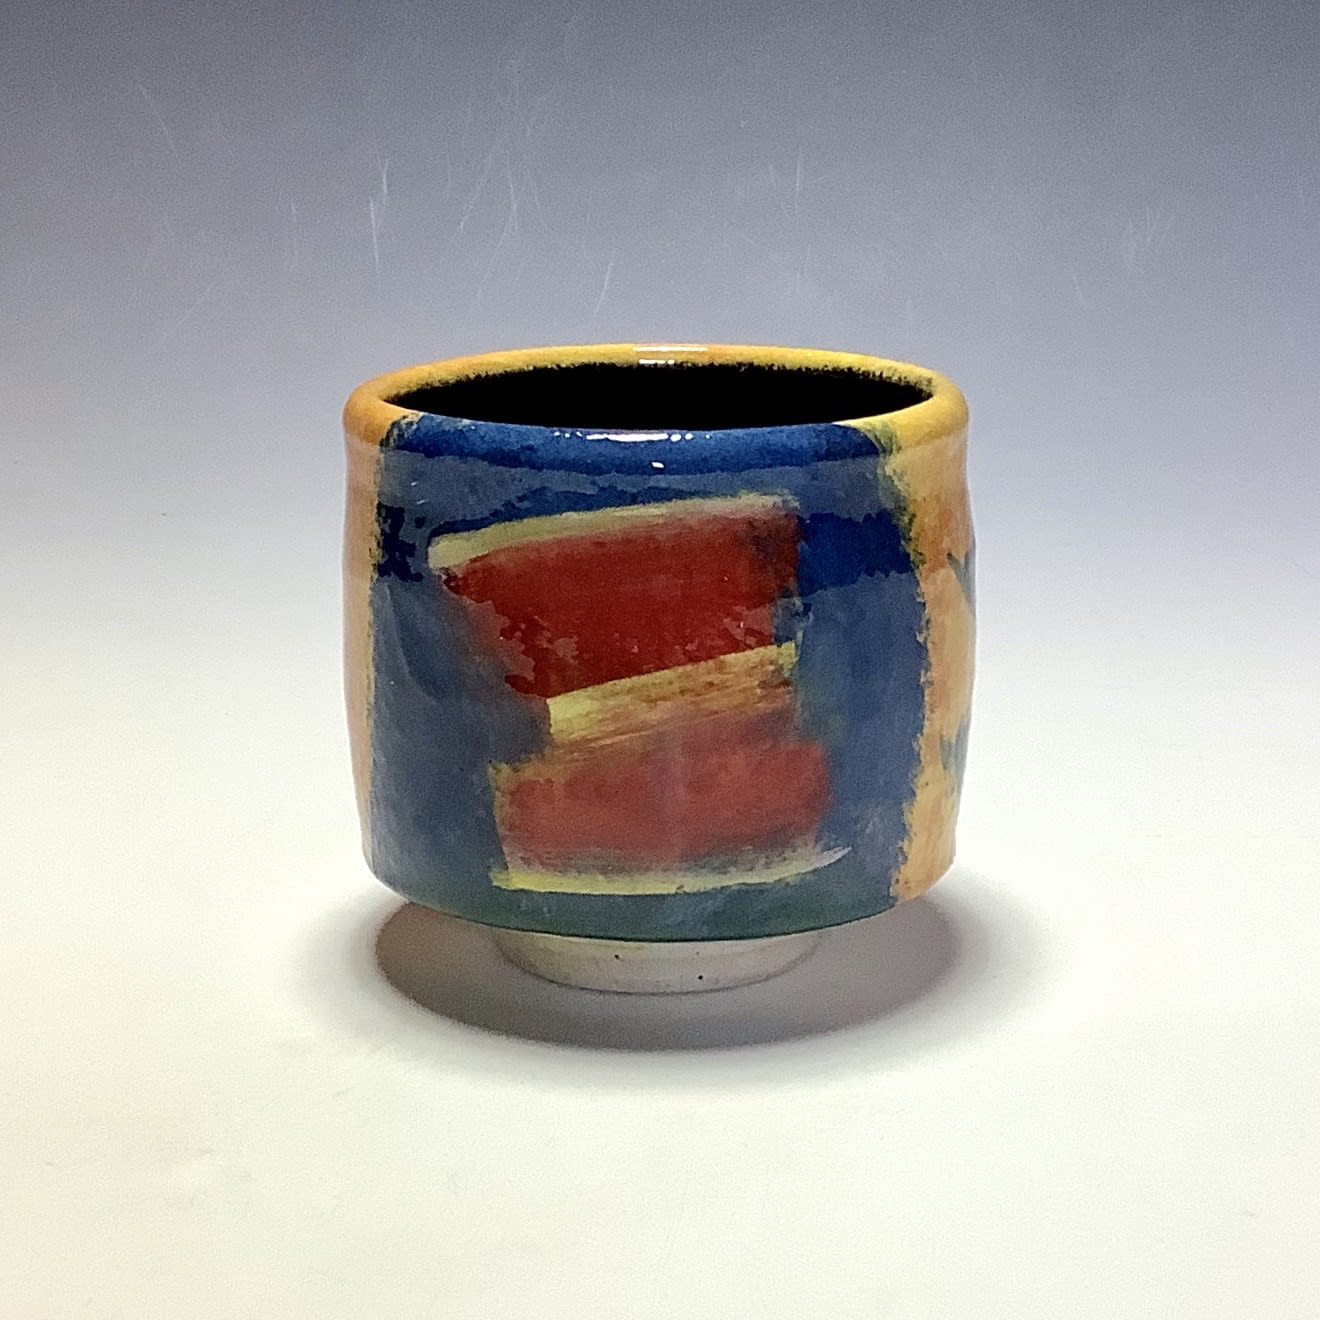 """<span class=""""link fancybox-details-link""""><a href=""""/artists/100-john-pollex/works/7847-john-pollex-tea-bowl-2021/"""">View Detail Page</a></span><div class=""""artist""""><strong>John Pollex</strong></div> <div class=""""title""""><em>Tea Bowl</em>, 2021</div> <div class=""""signed_and_dated"""">impressed with the artist's seal mark 'JP'</div> <div class=""""medium"""">white earthenware decorated with coloured slips</div> <div class=""""dimensions"""">height. 9 cm x diameter. 9.5 cm</div><div class=""""price"""">£88.00</div><div class=""""copyright_line"""">Own Art: £8.80 x 10 Months, 0% APR</div>"""